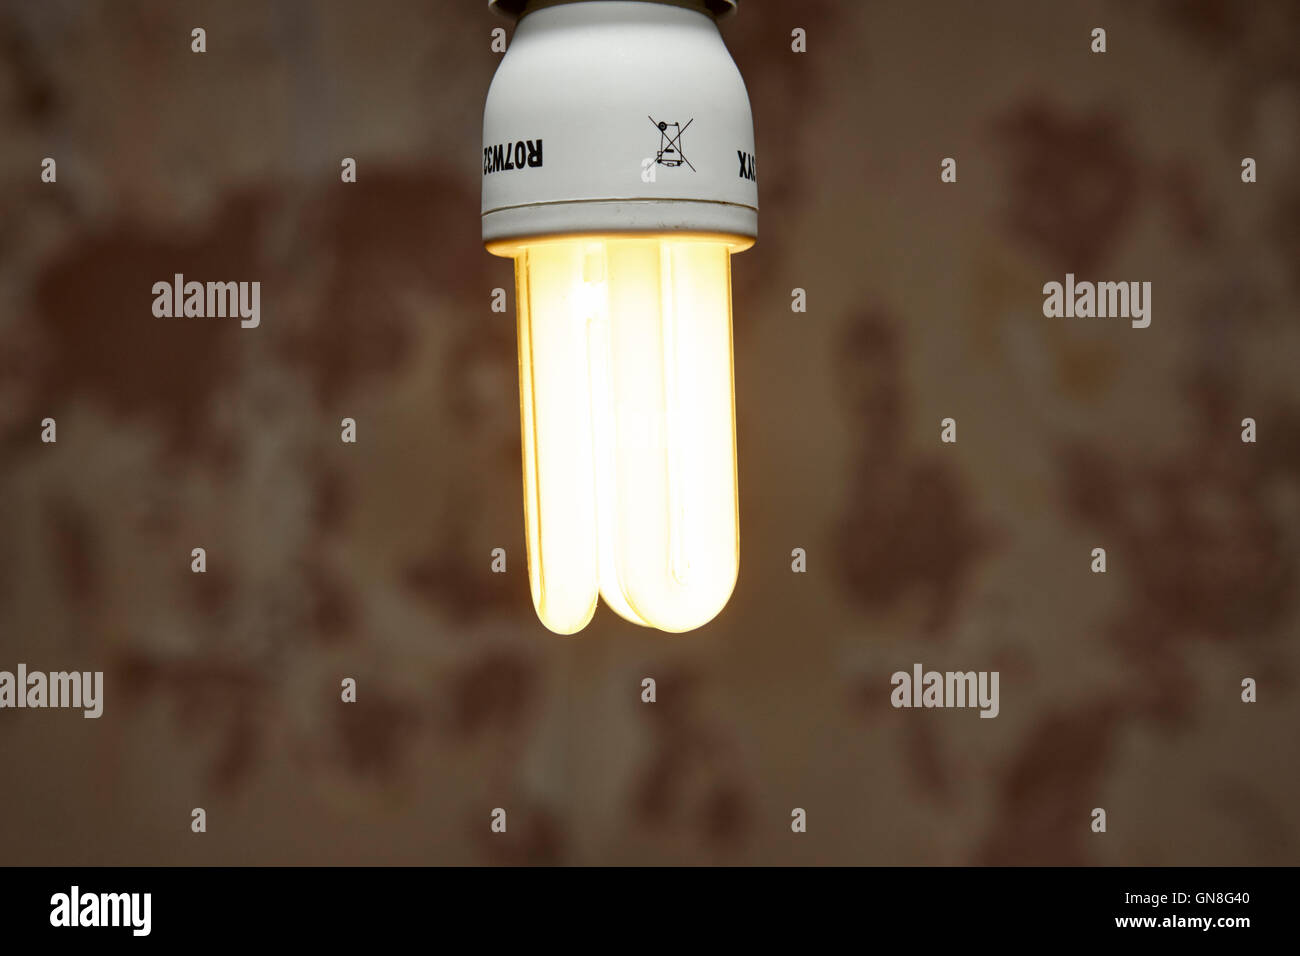 cfl compact fluorescent energy saving lightbulb - Stock Image